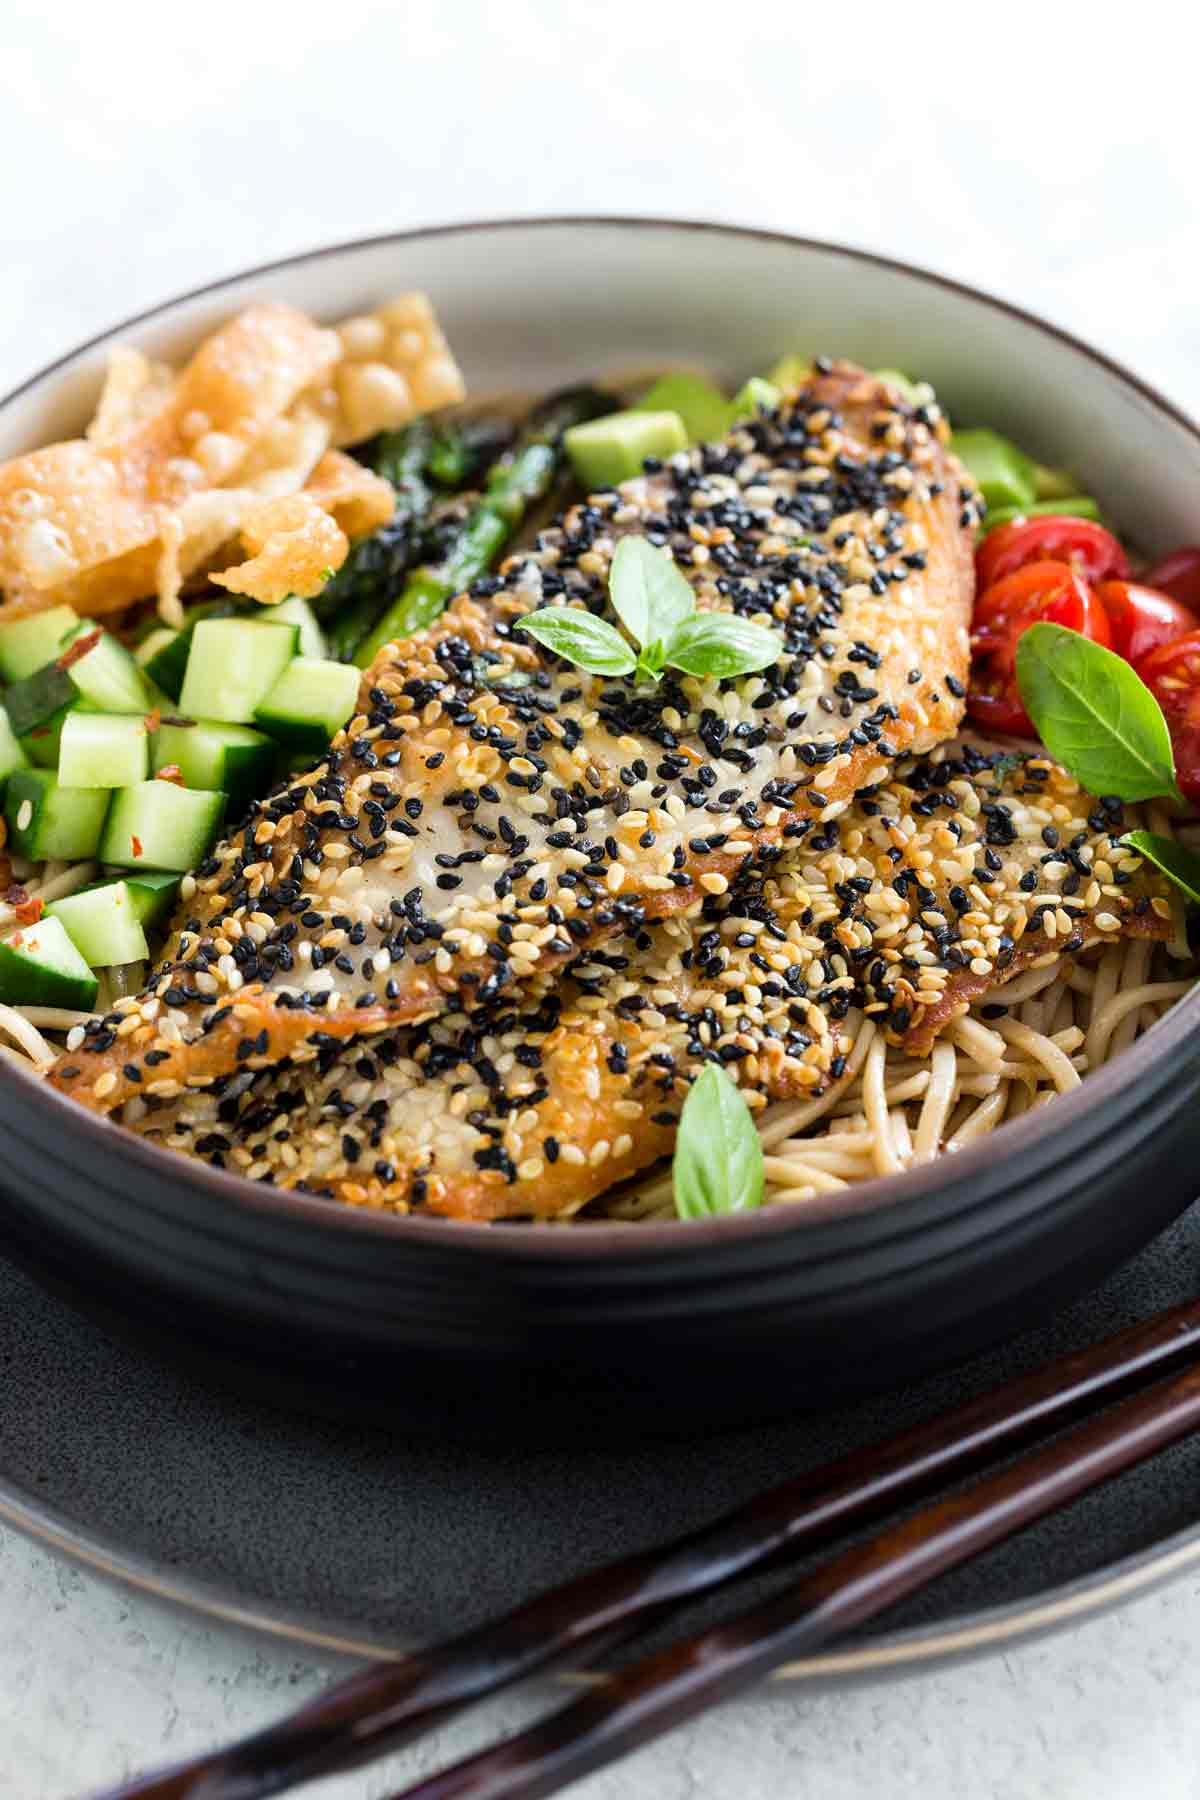 Pan-fried tilapia with sesame crust is an Asian-inspired dish packed with bold flavors and irresistible textures.